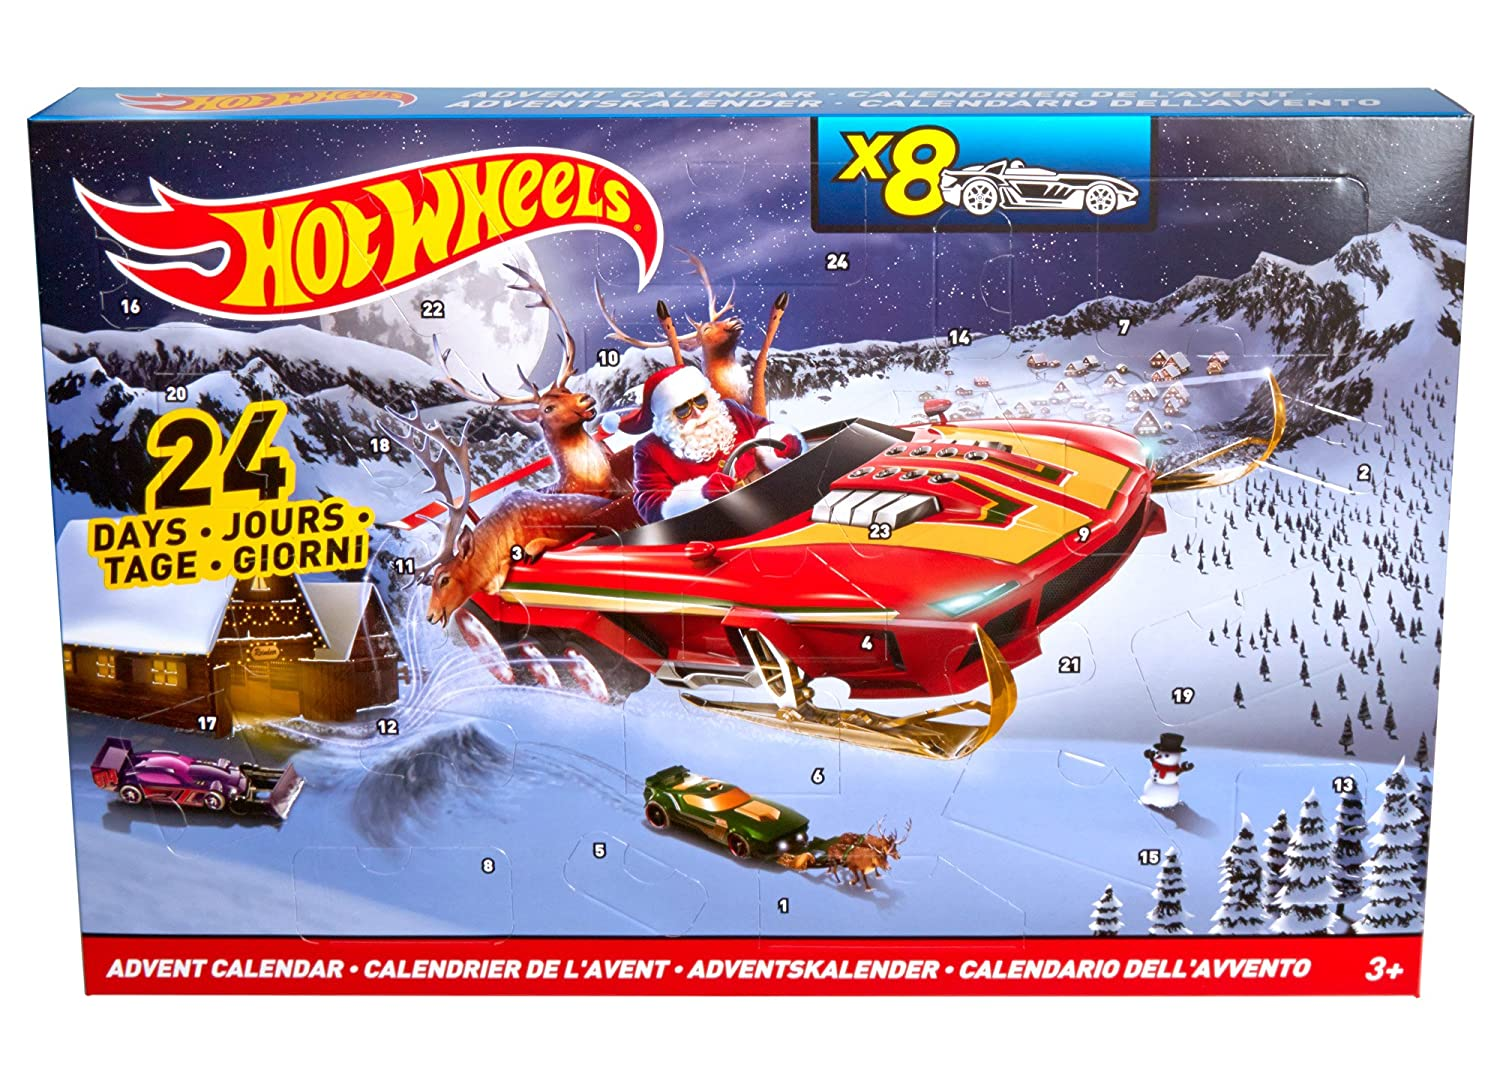 Mattel Hot Wheels Advent calendar DMH 53. DMH53